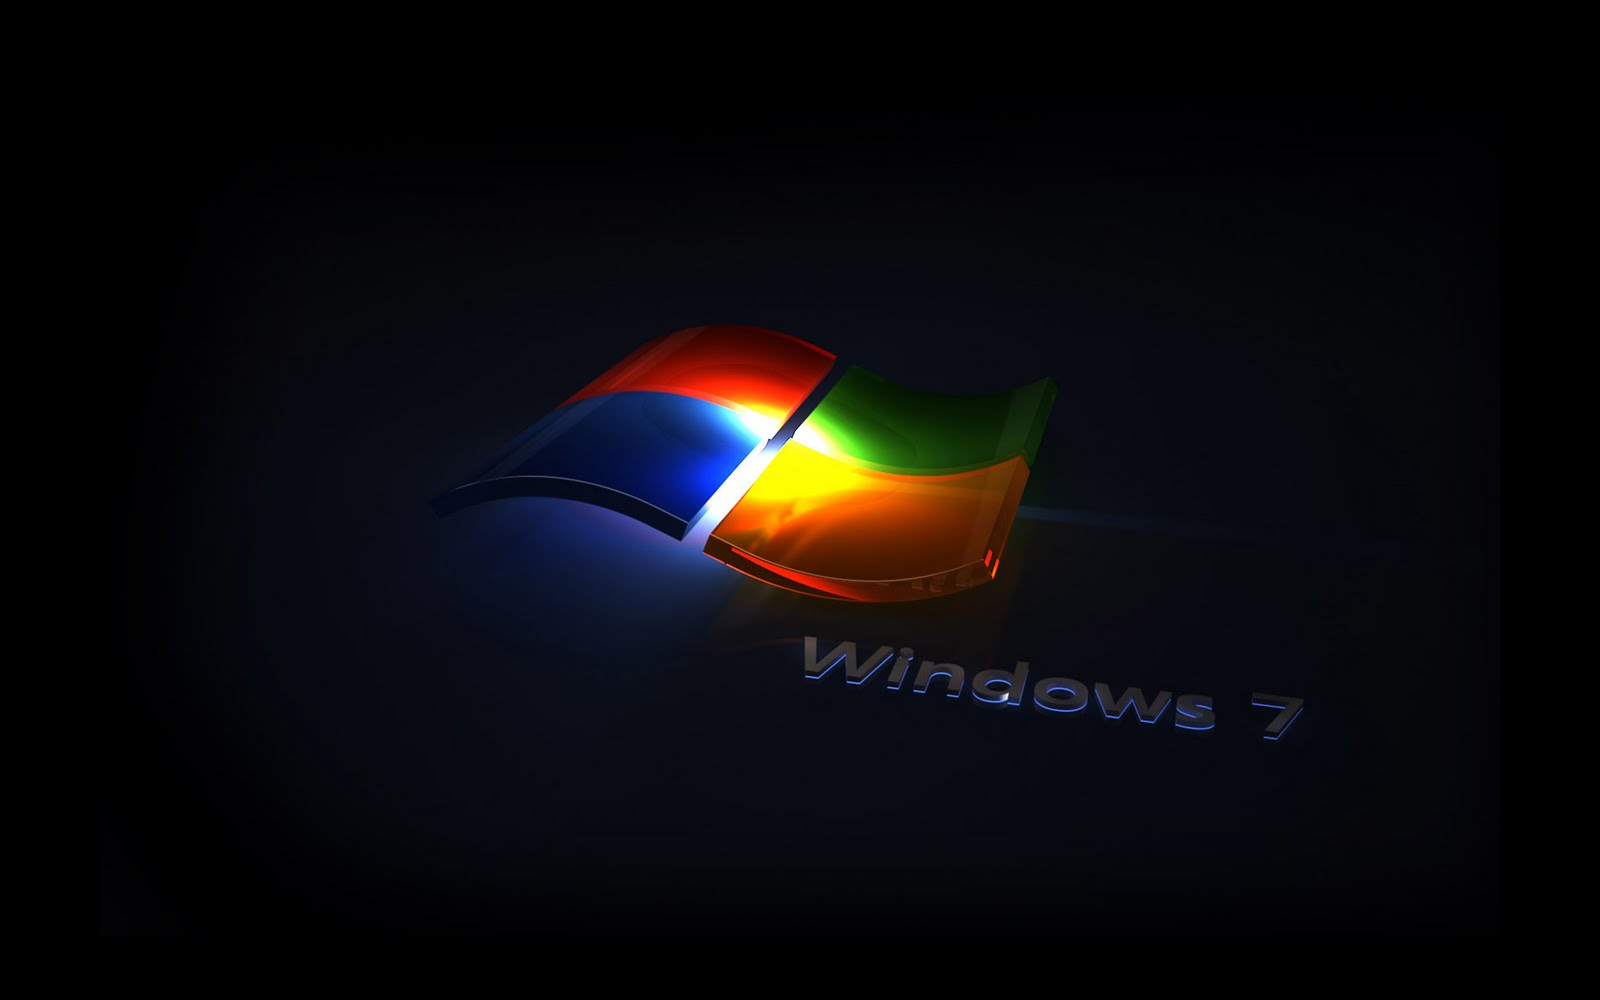 Windows 7 Toshiba Laptop Top Wallpaper Windows 7 Toshiba Laptop 1600x1000